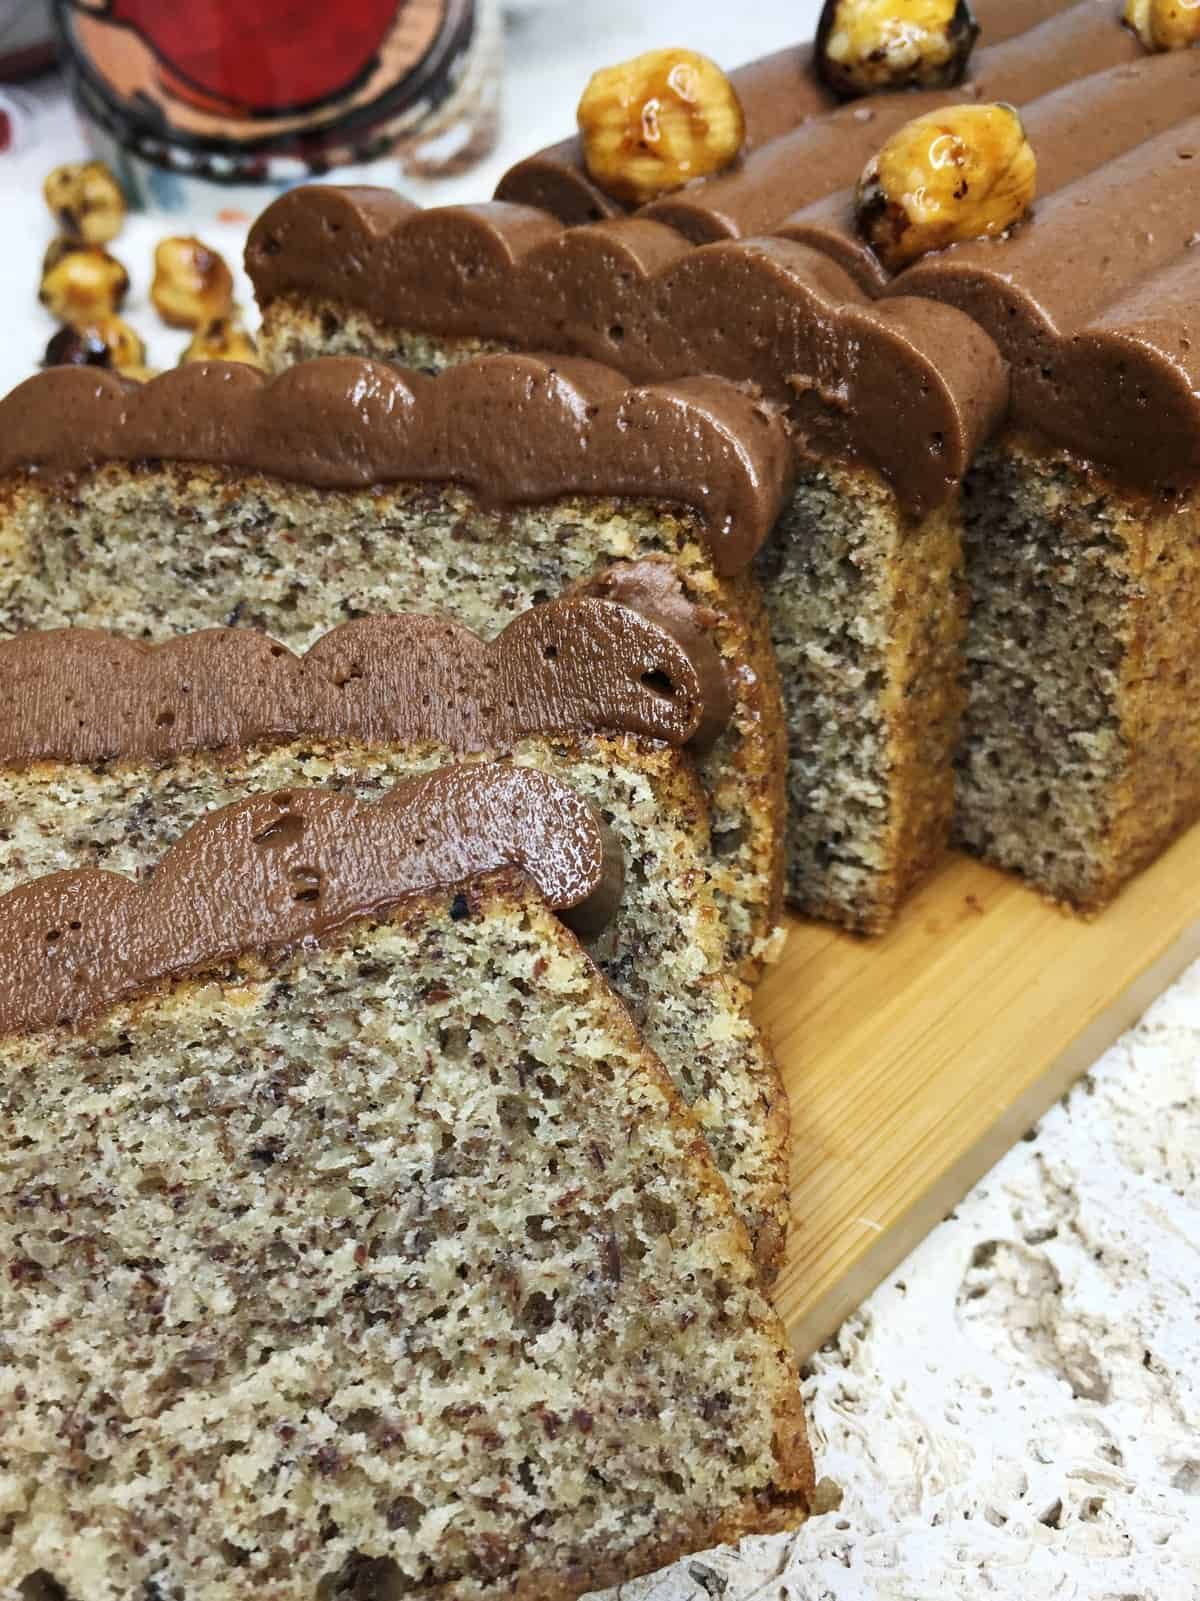 A few slices of hazelnut cake on a cutting board and a cup on background